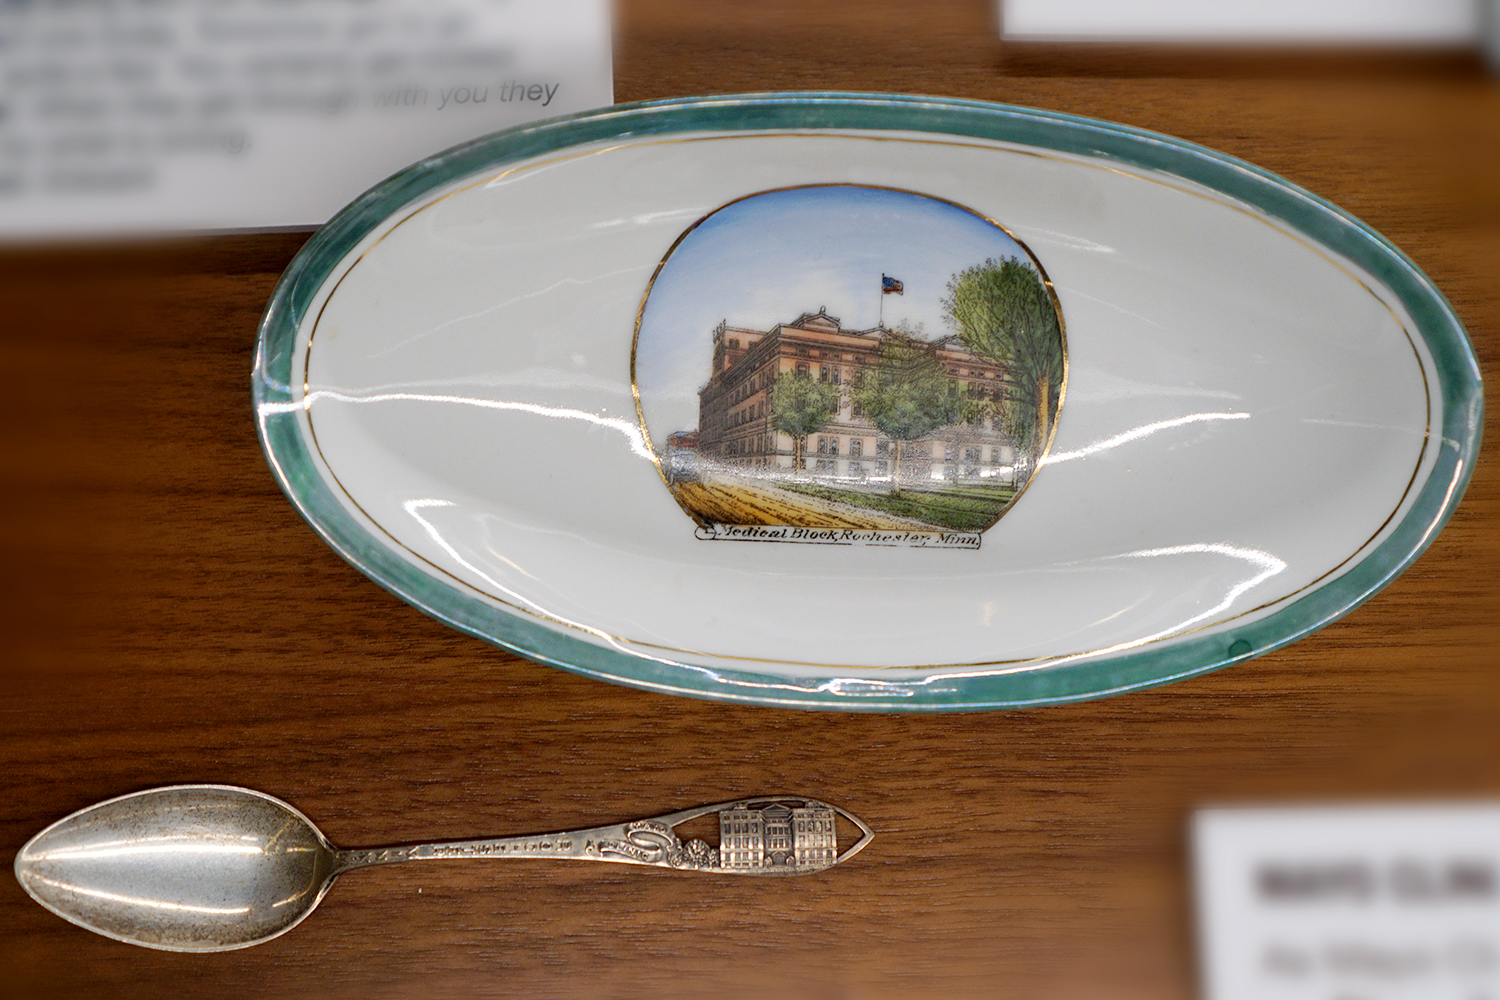 Souvenir dish and spoon